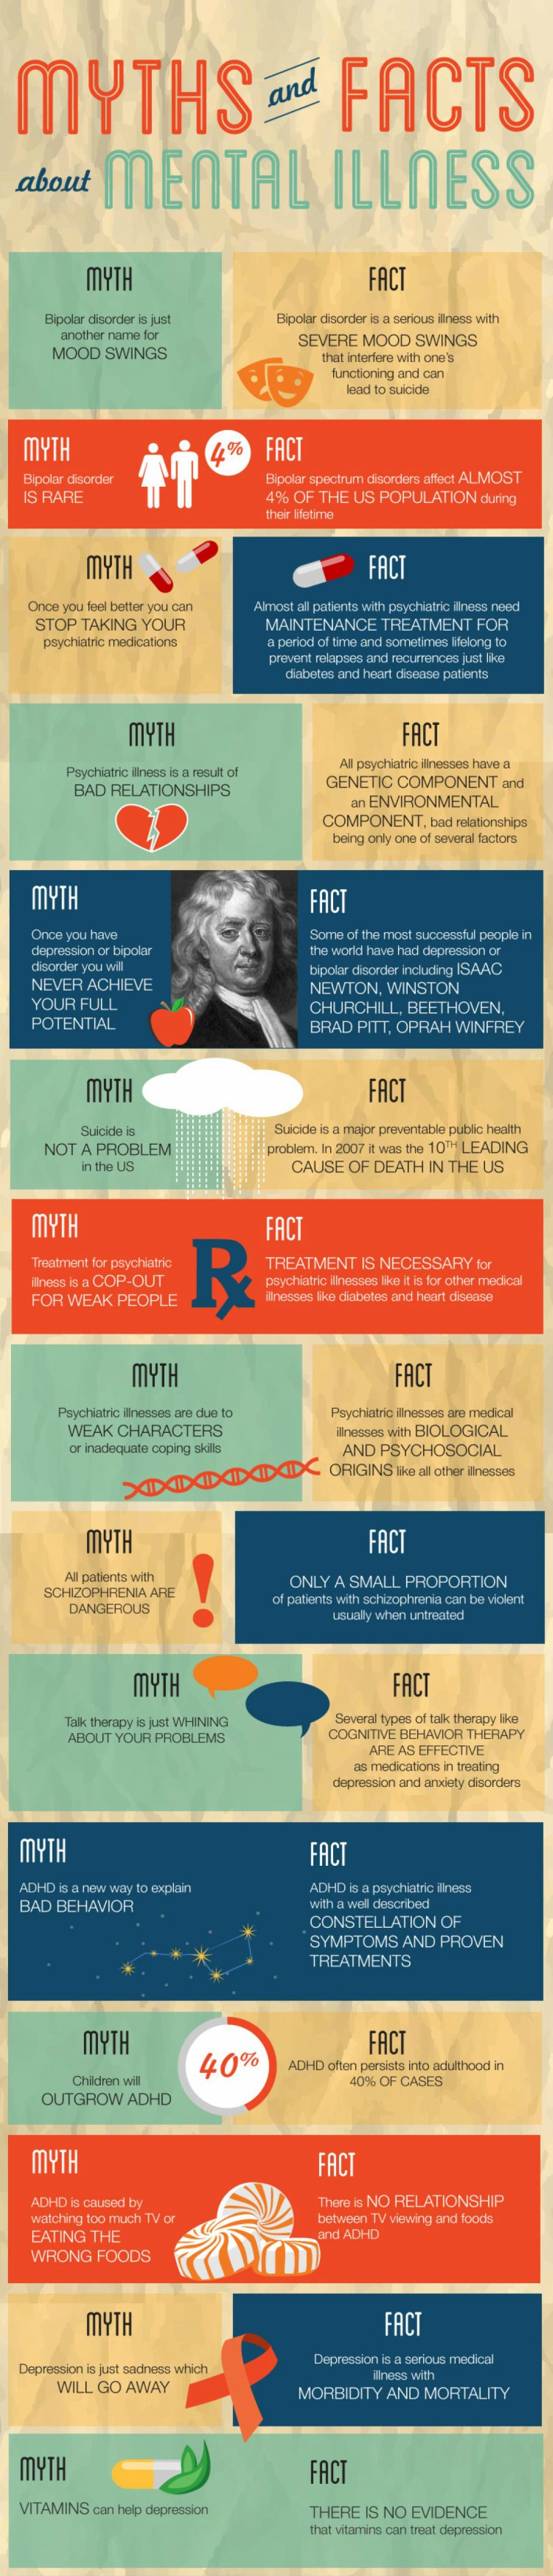 Myths-Facts-Mental-Illness.jpg